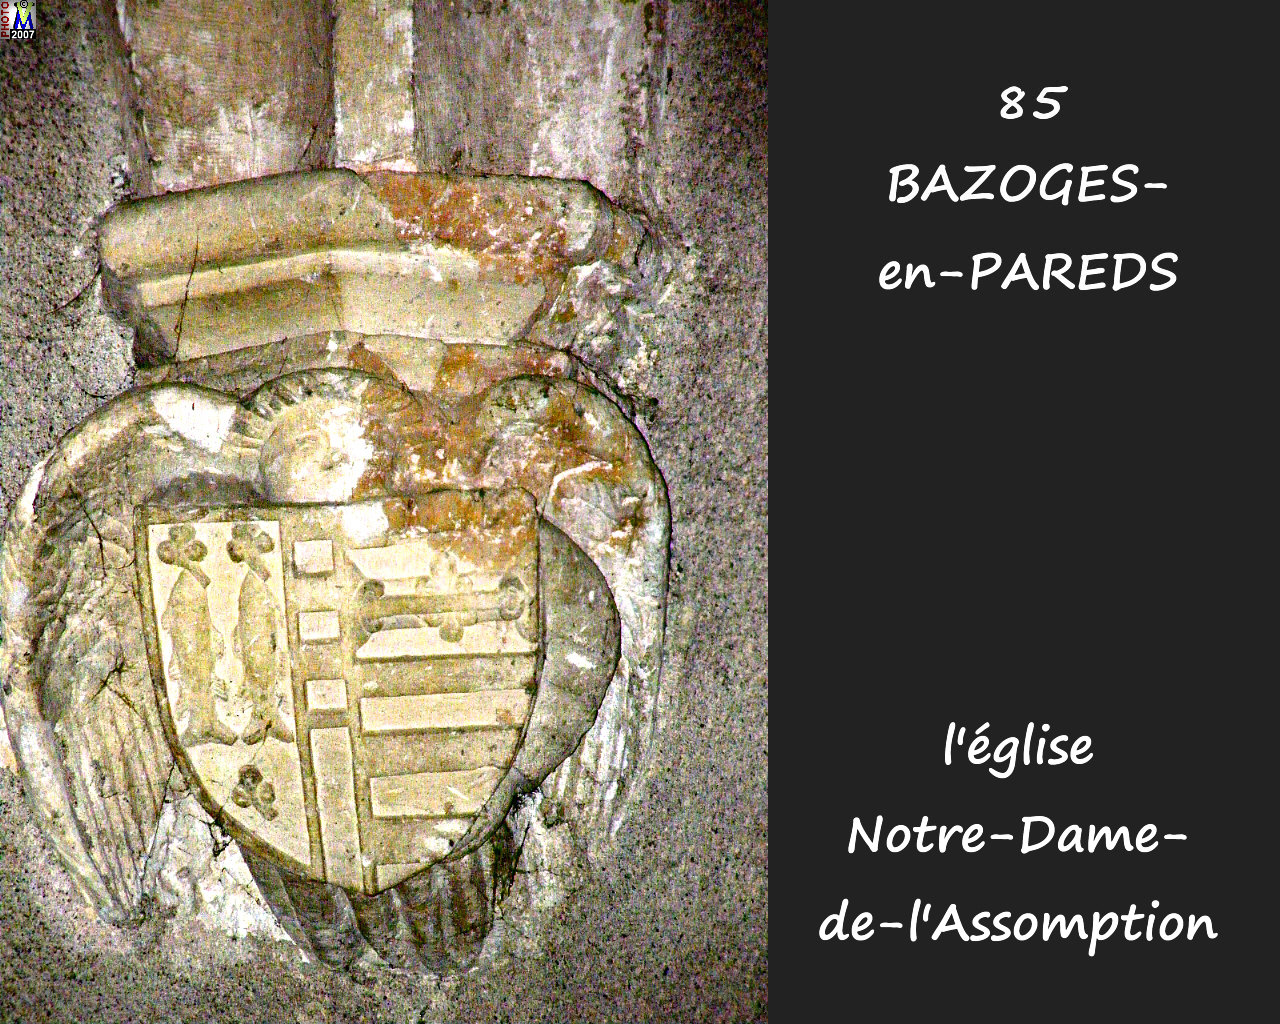 85BAZOGES-PAREDS_eglise_206.jpg